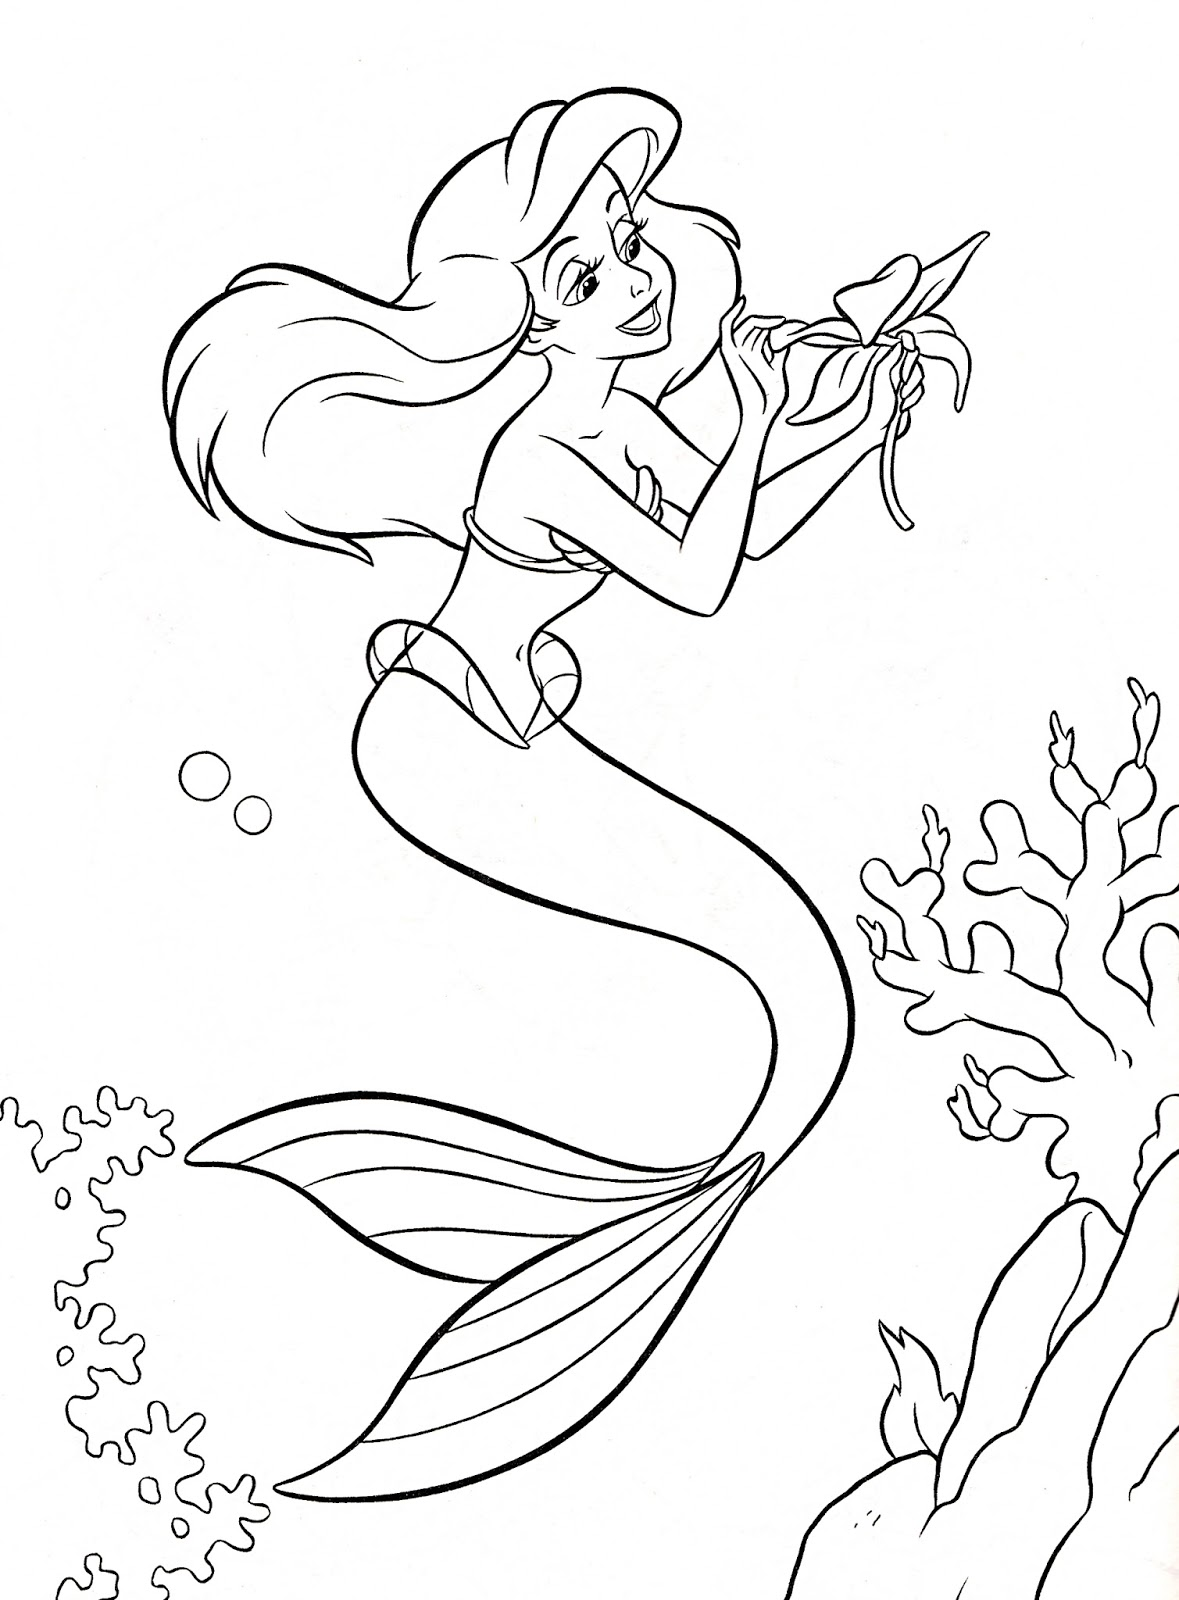 Ariel little mermaid under the sea coloring pages